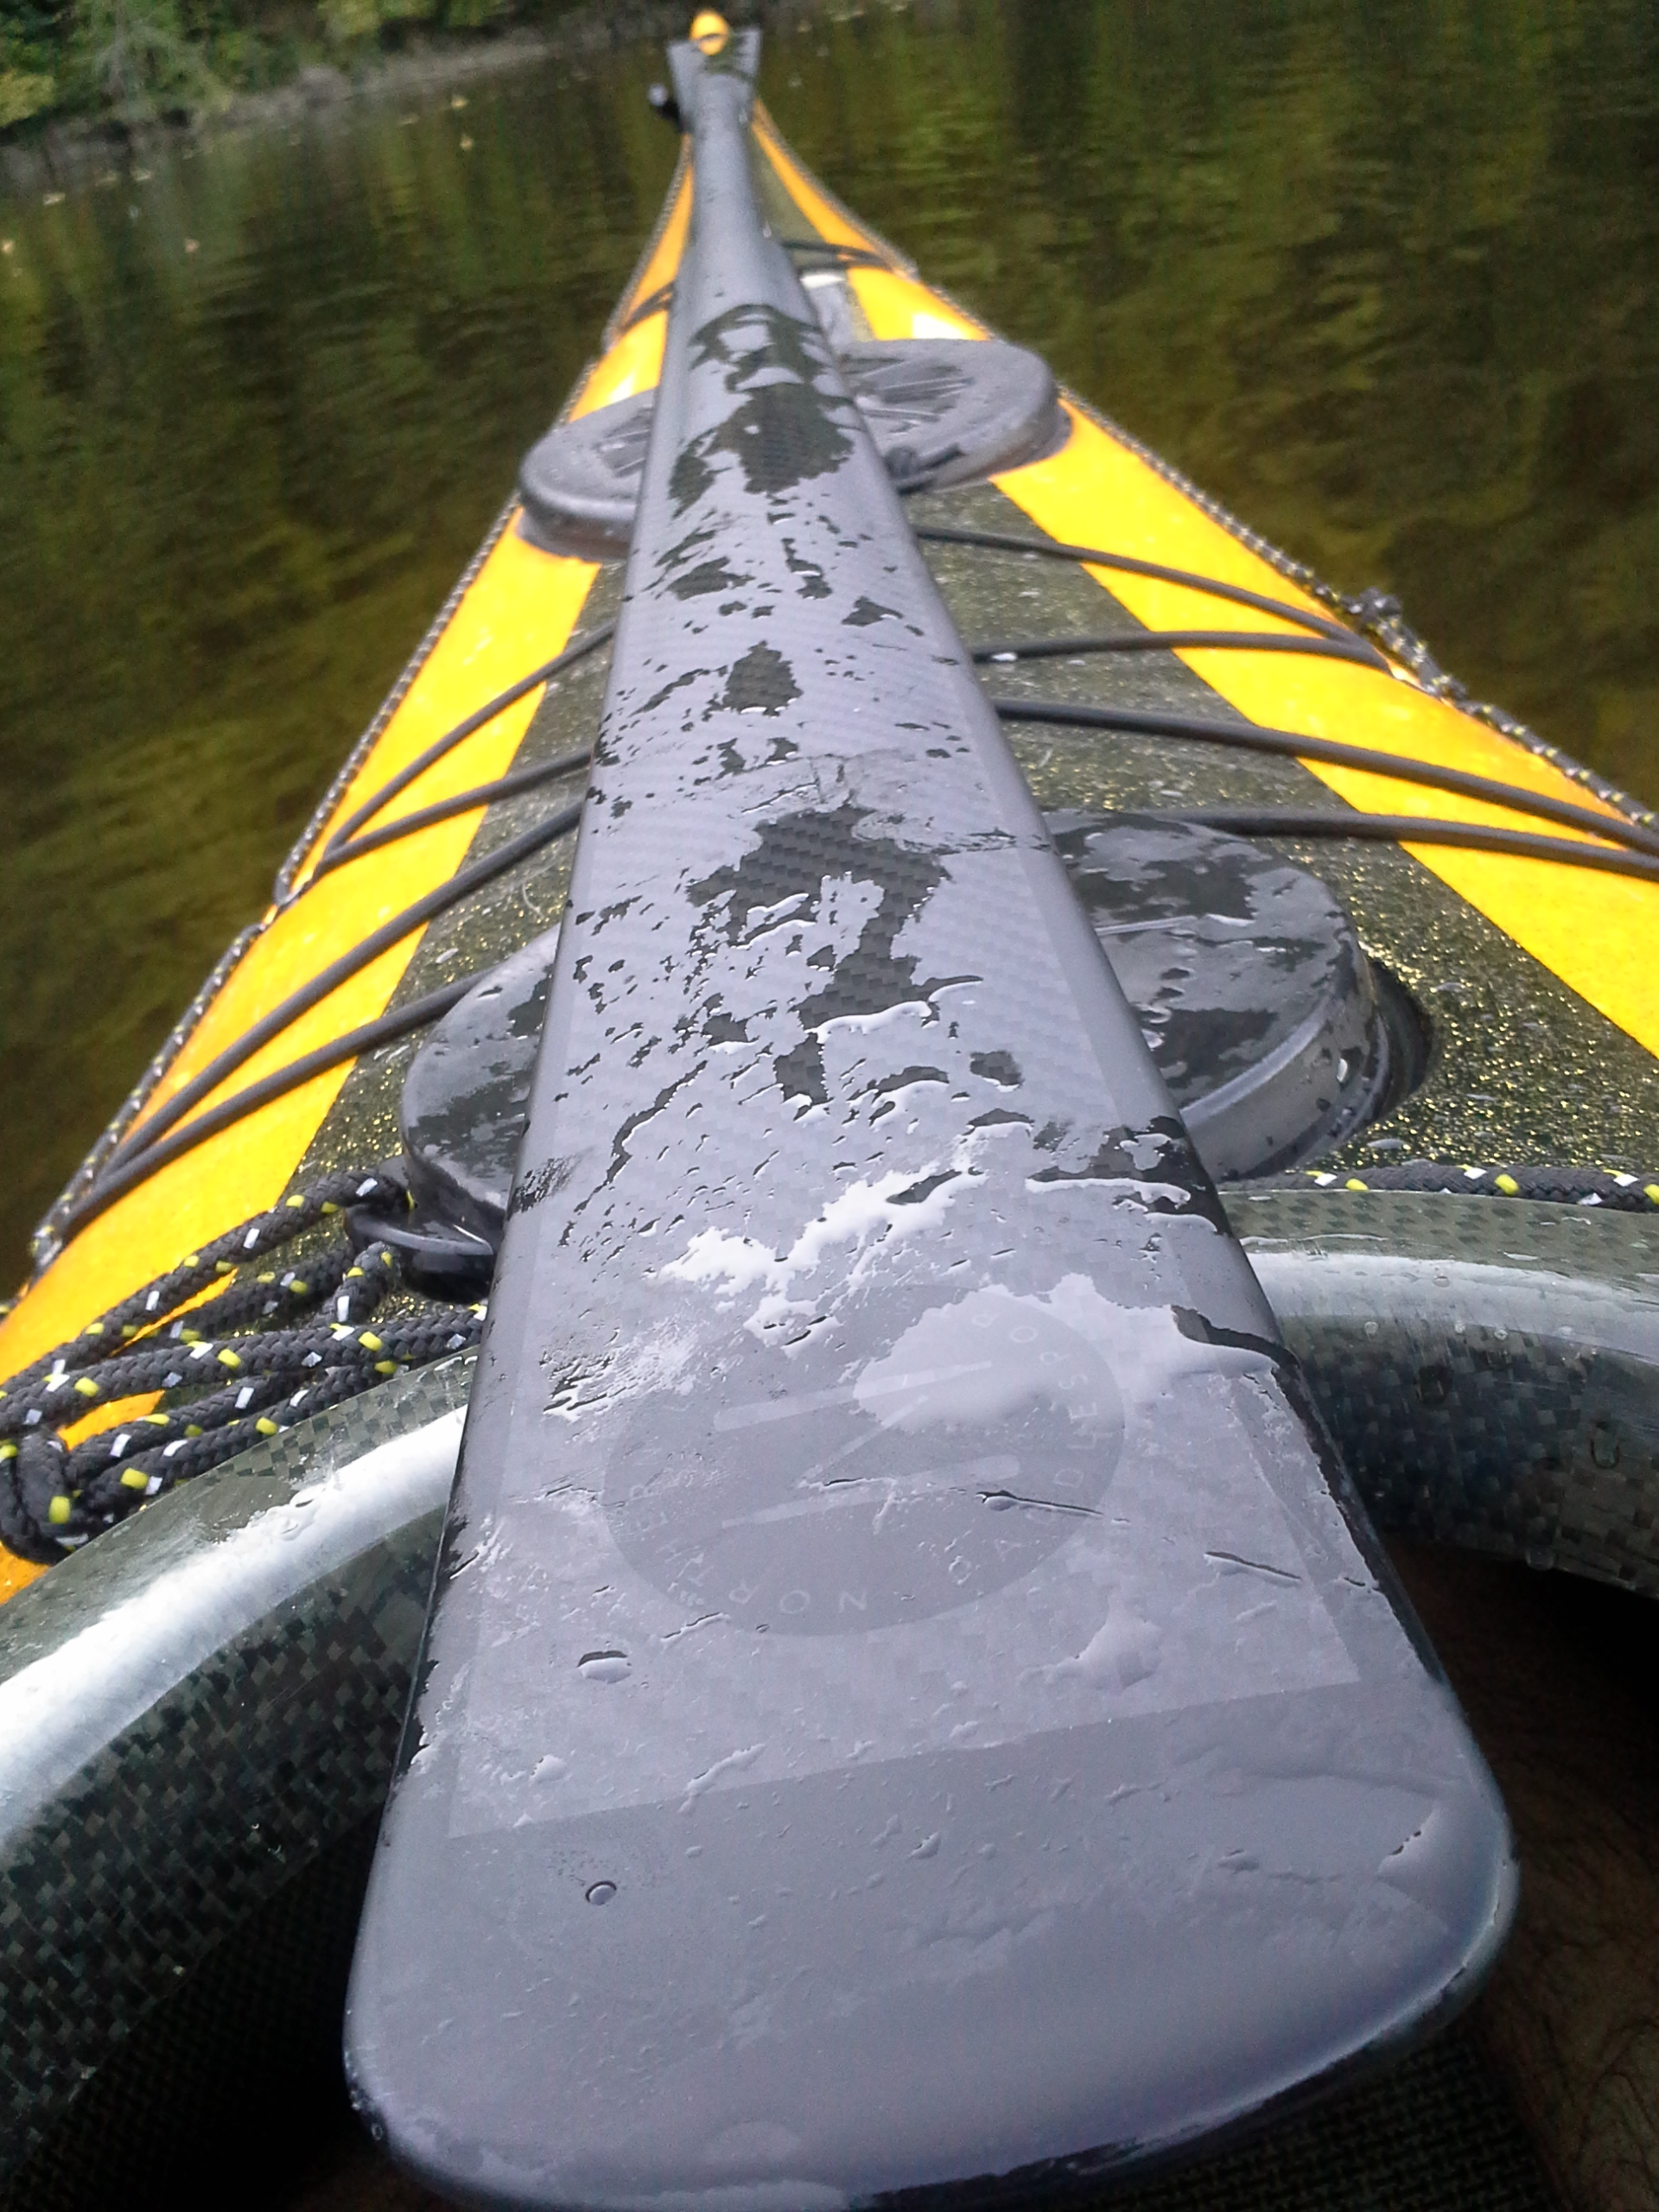 I am glad I didn't get it in white color as I wouldn't see the water drops on the outer layer of my paddle